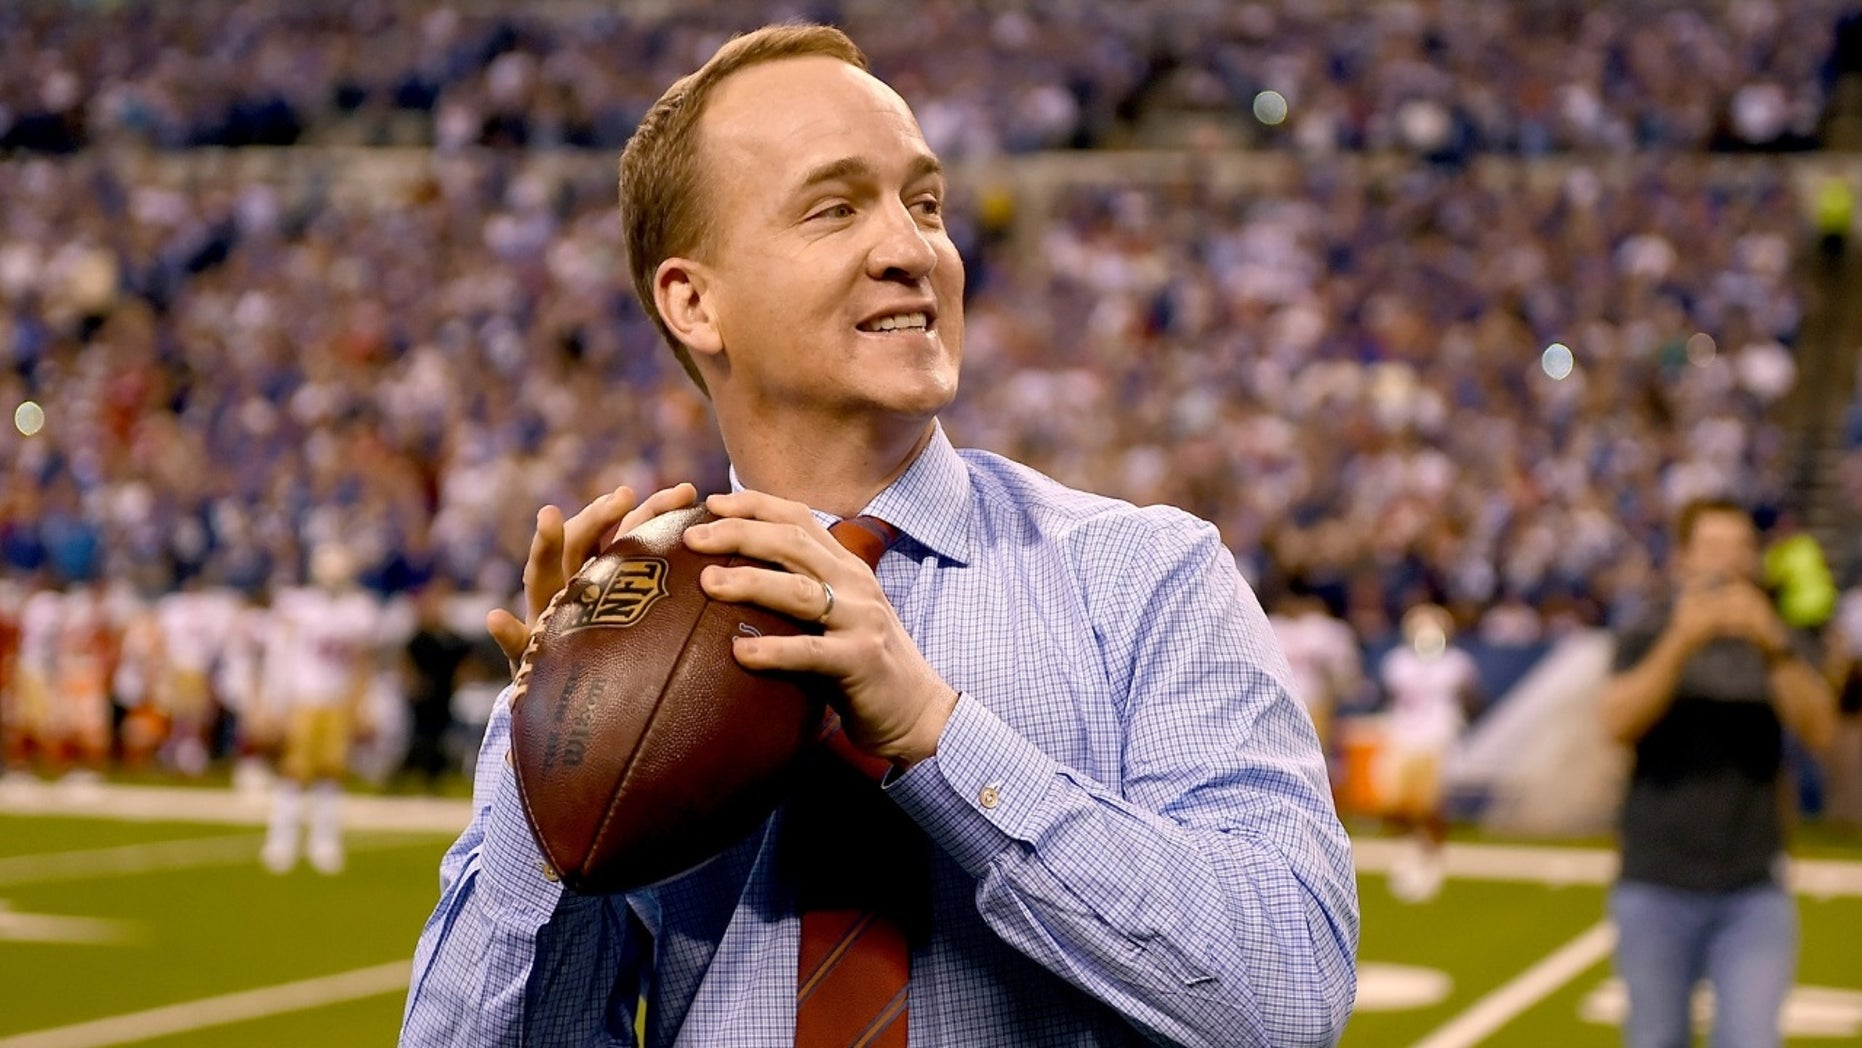 """Former NFL quarterback Peyton Manning has reportedly been approached by ESPN to fill their empty spot in the """"Monday Night Football"""" booth."""